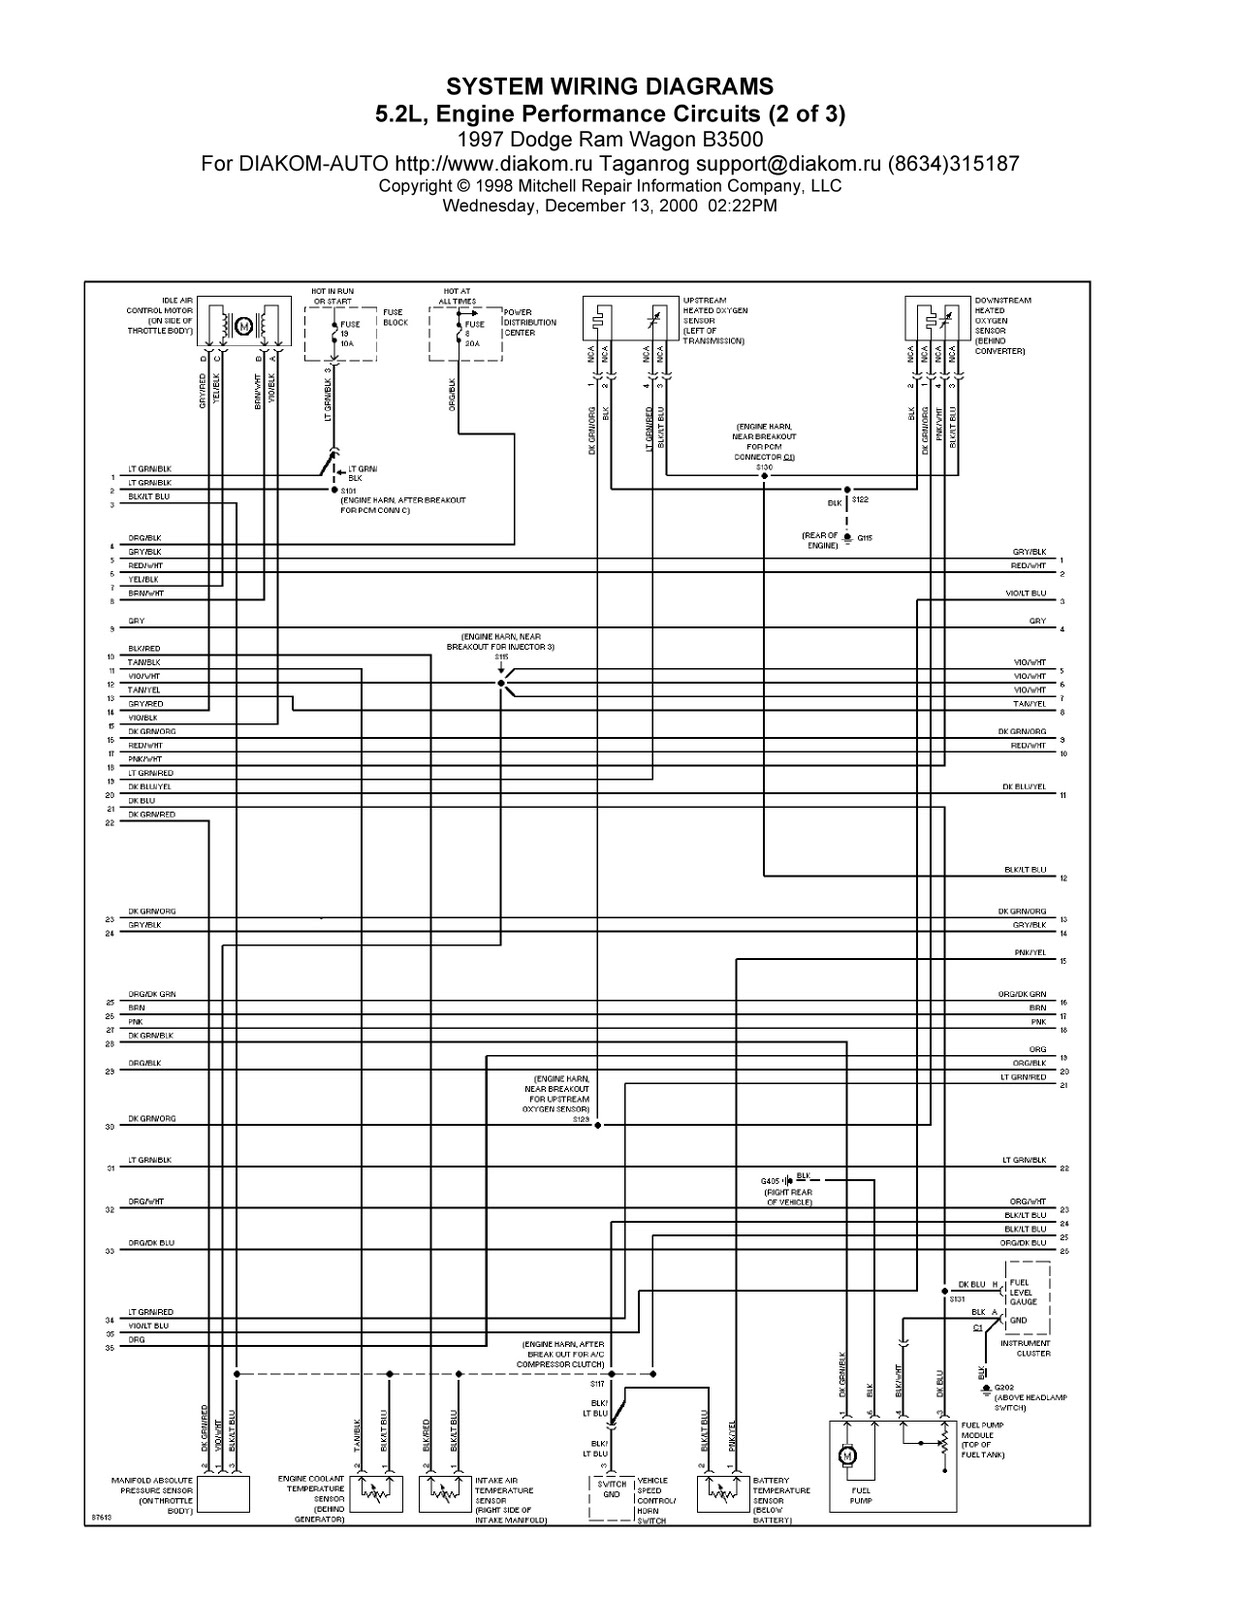 hight resolution of dodge power wagon engine harness diagram wiring library1997 dodge ram wagon b3500 system wiring diagram 5